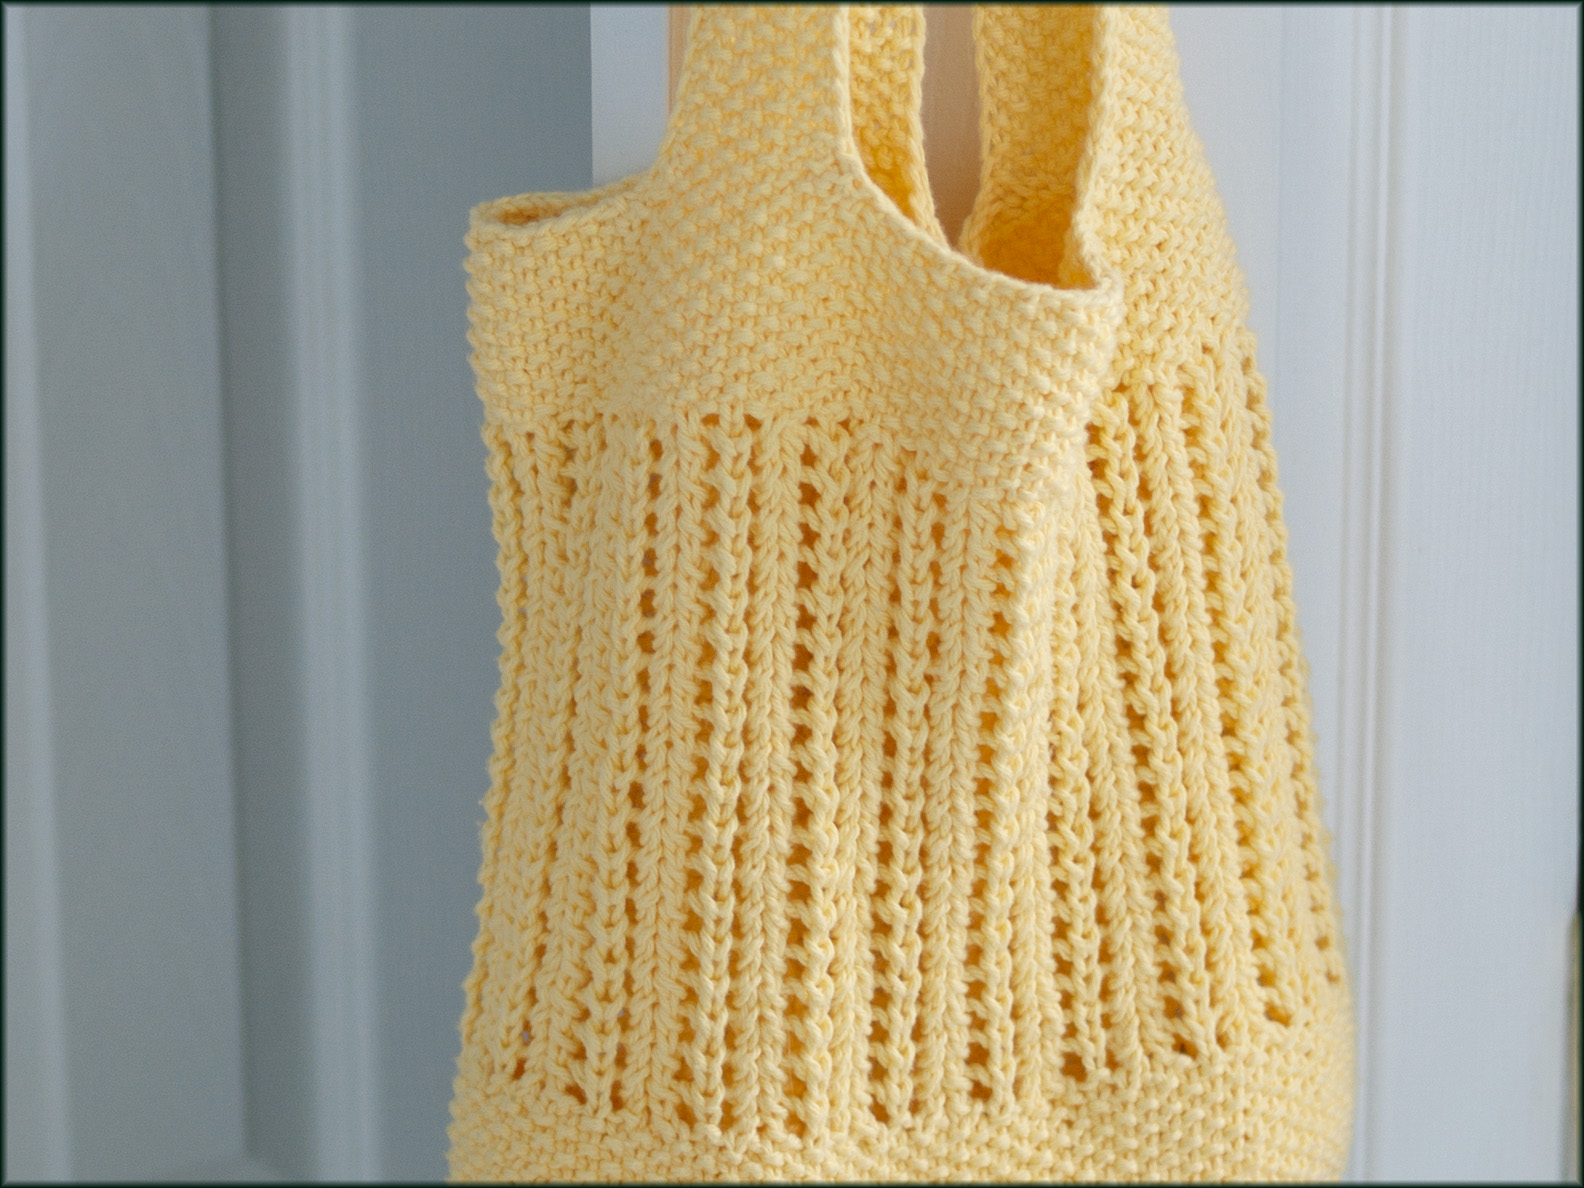 Wyndlestraw Designs: Market Bag Knit-along #7 - Handles and Finishing